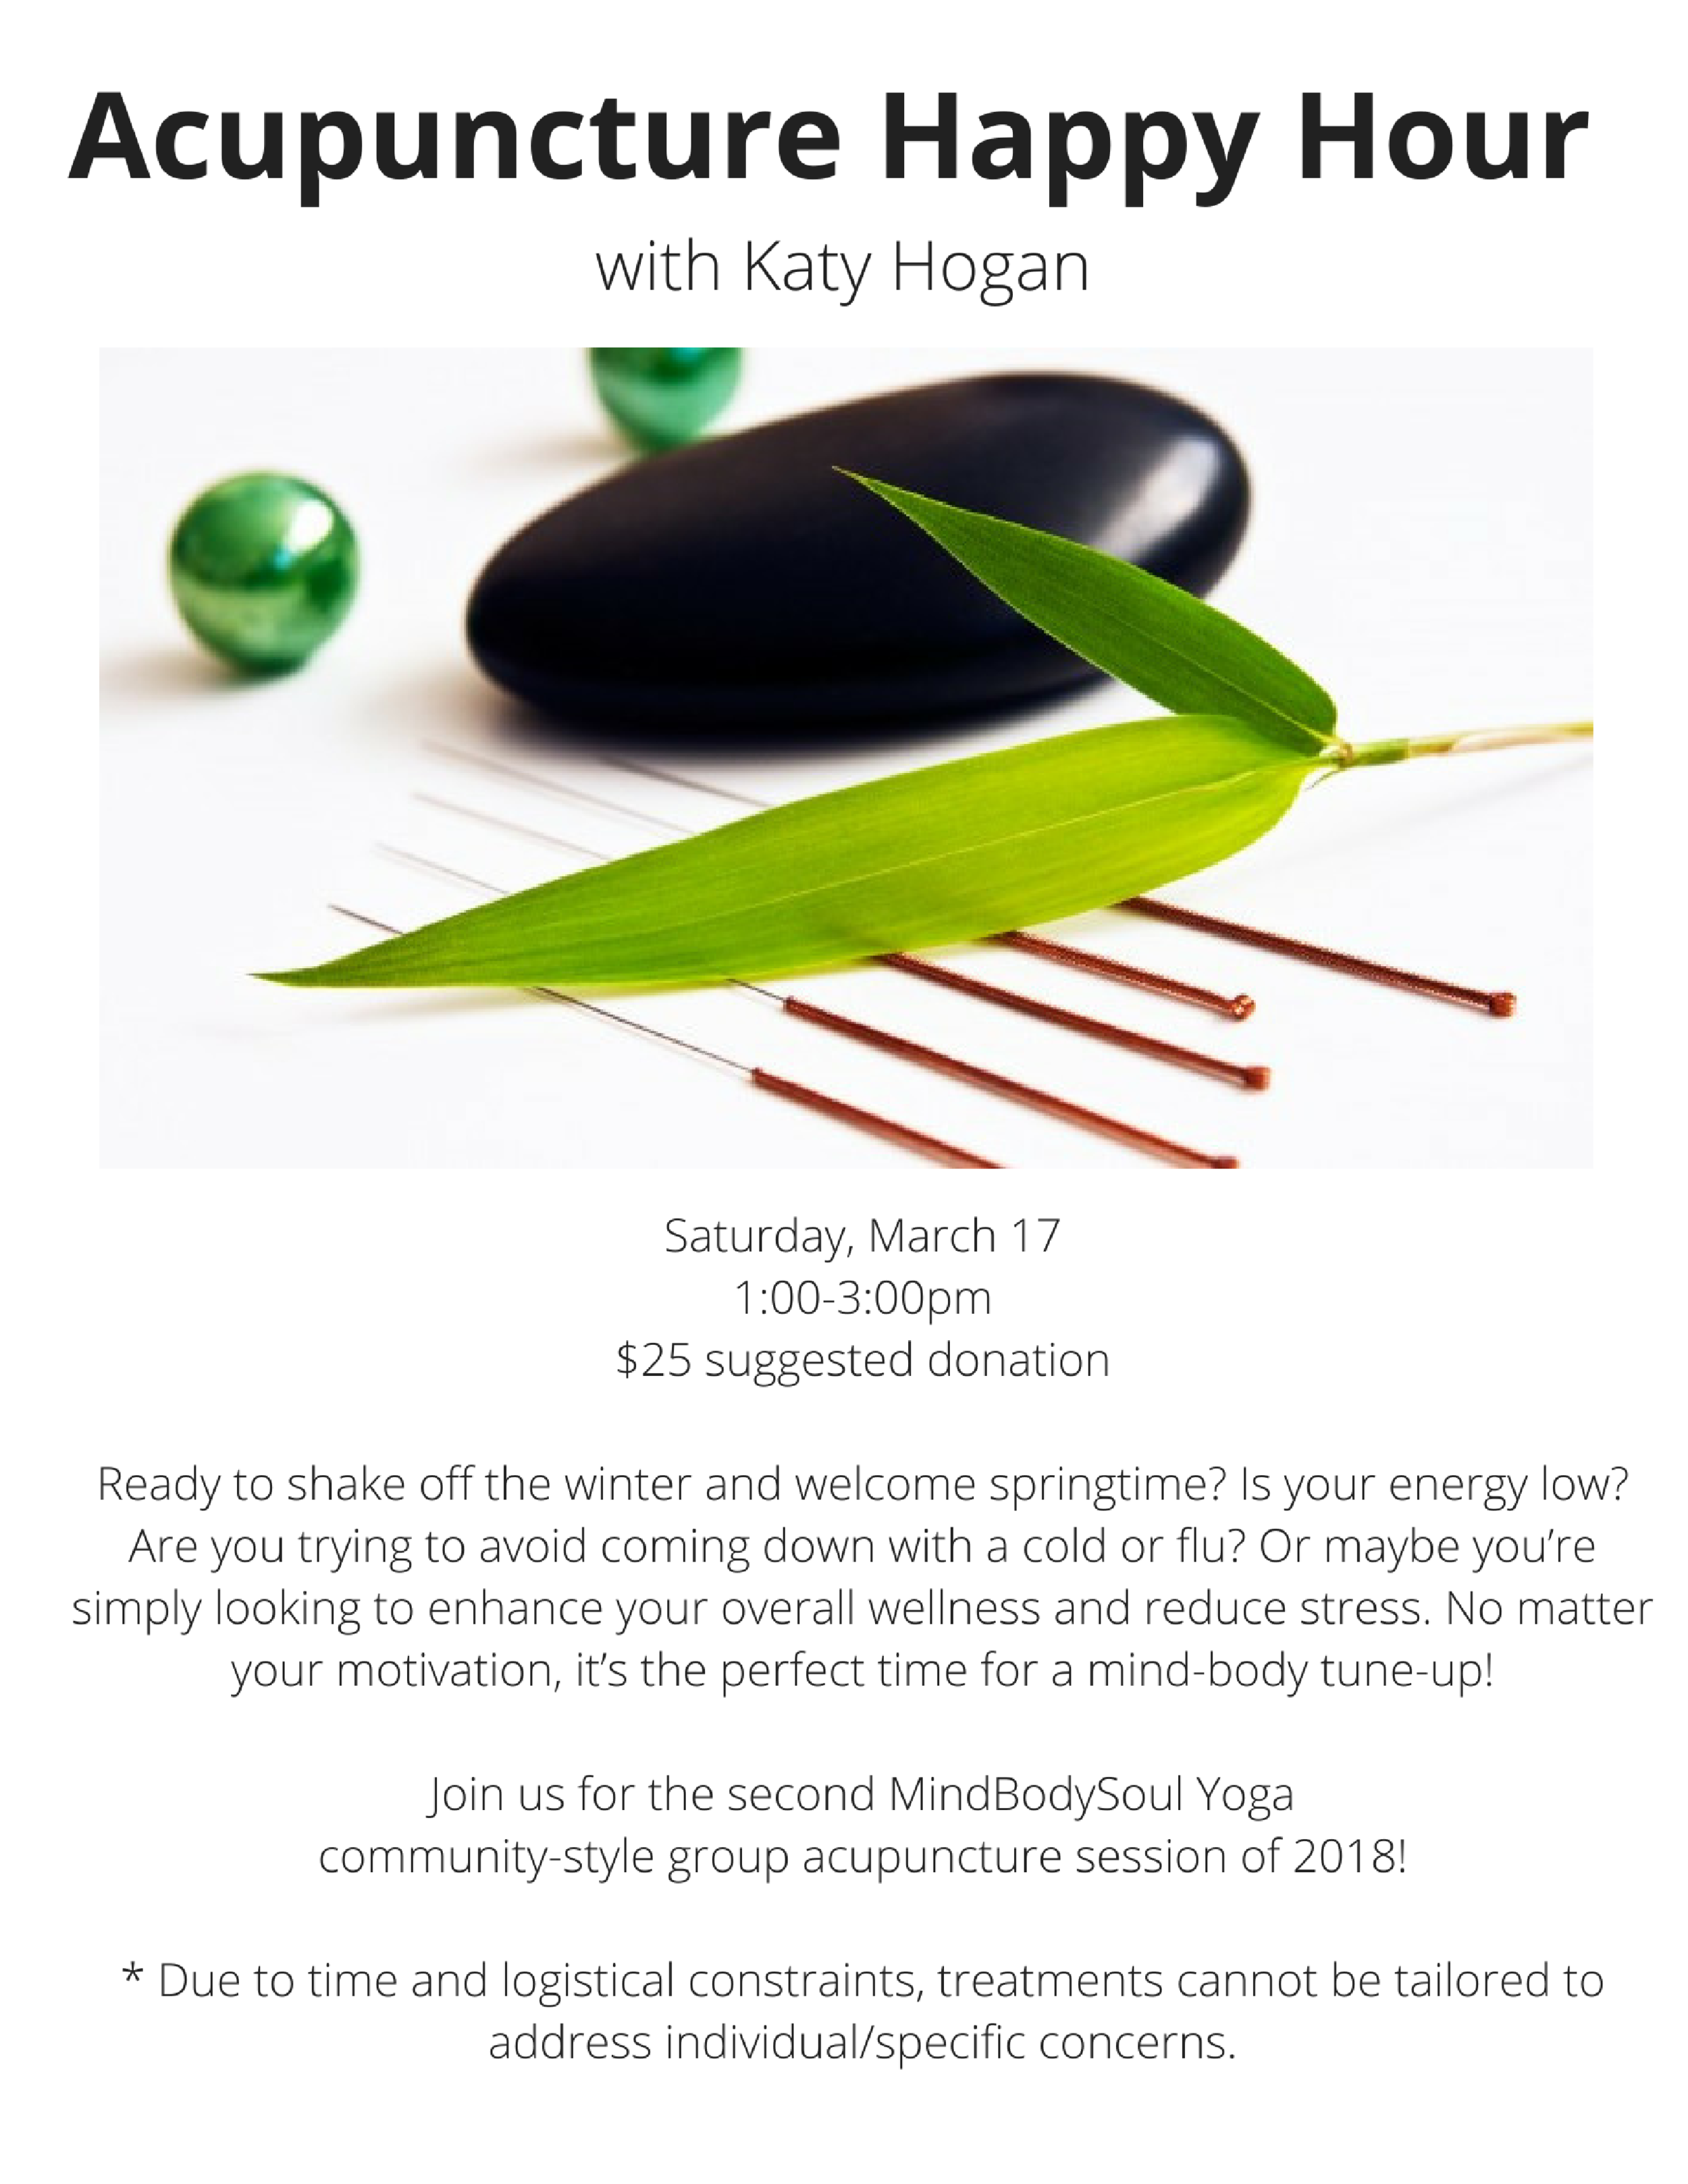 Acupuncture Happy Hour with Katy Hogan (1).png